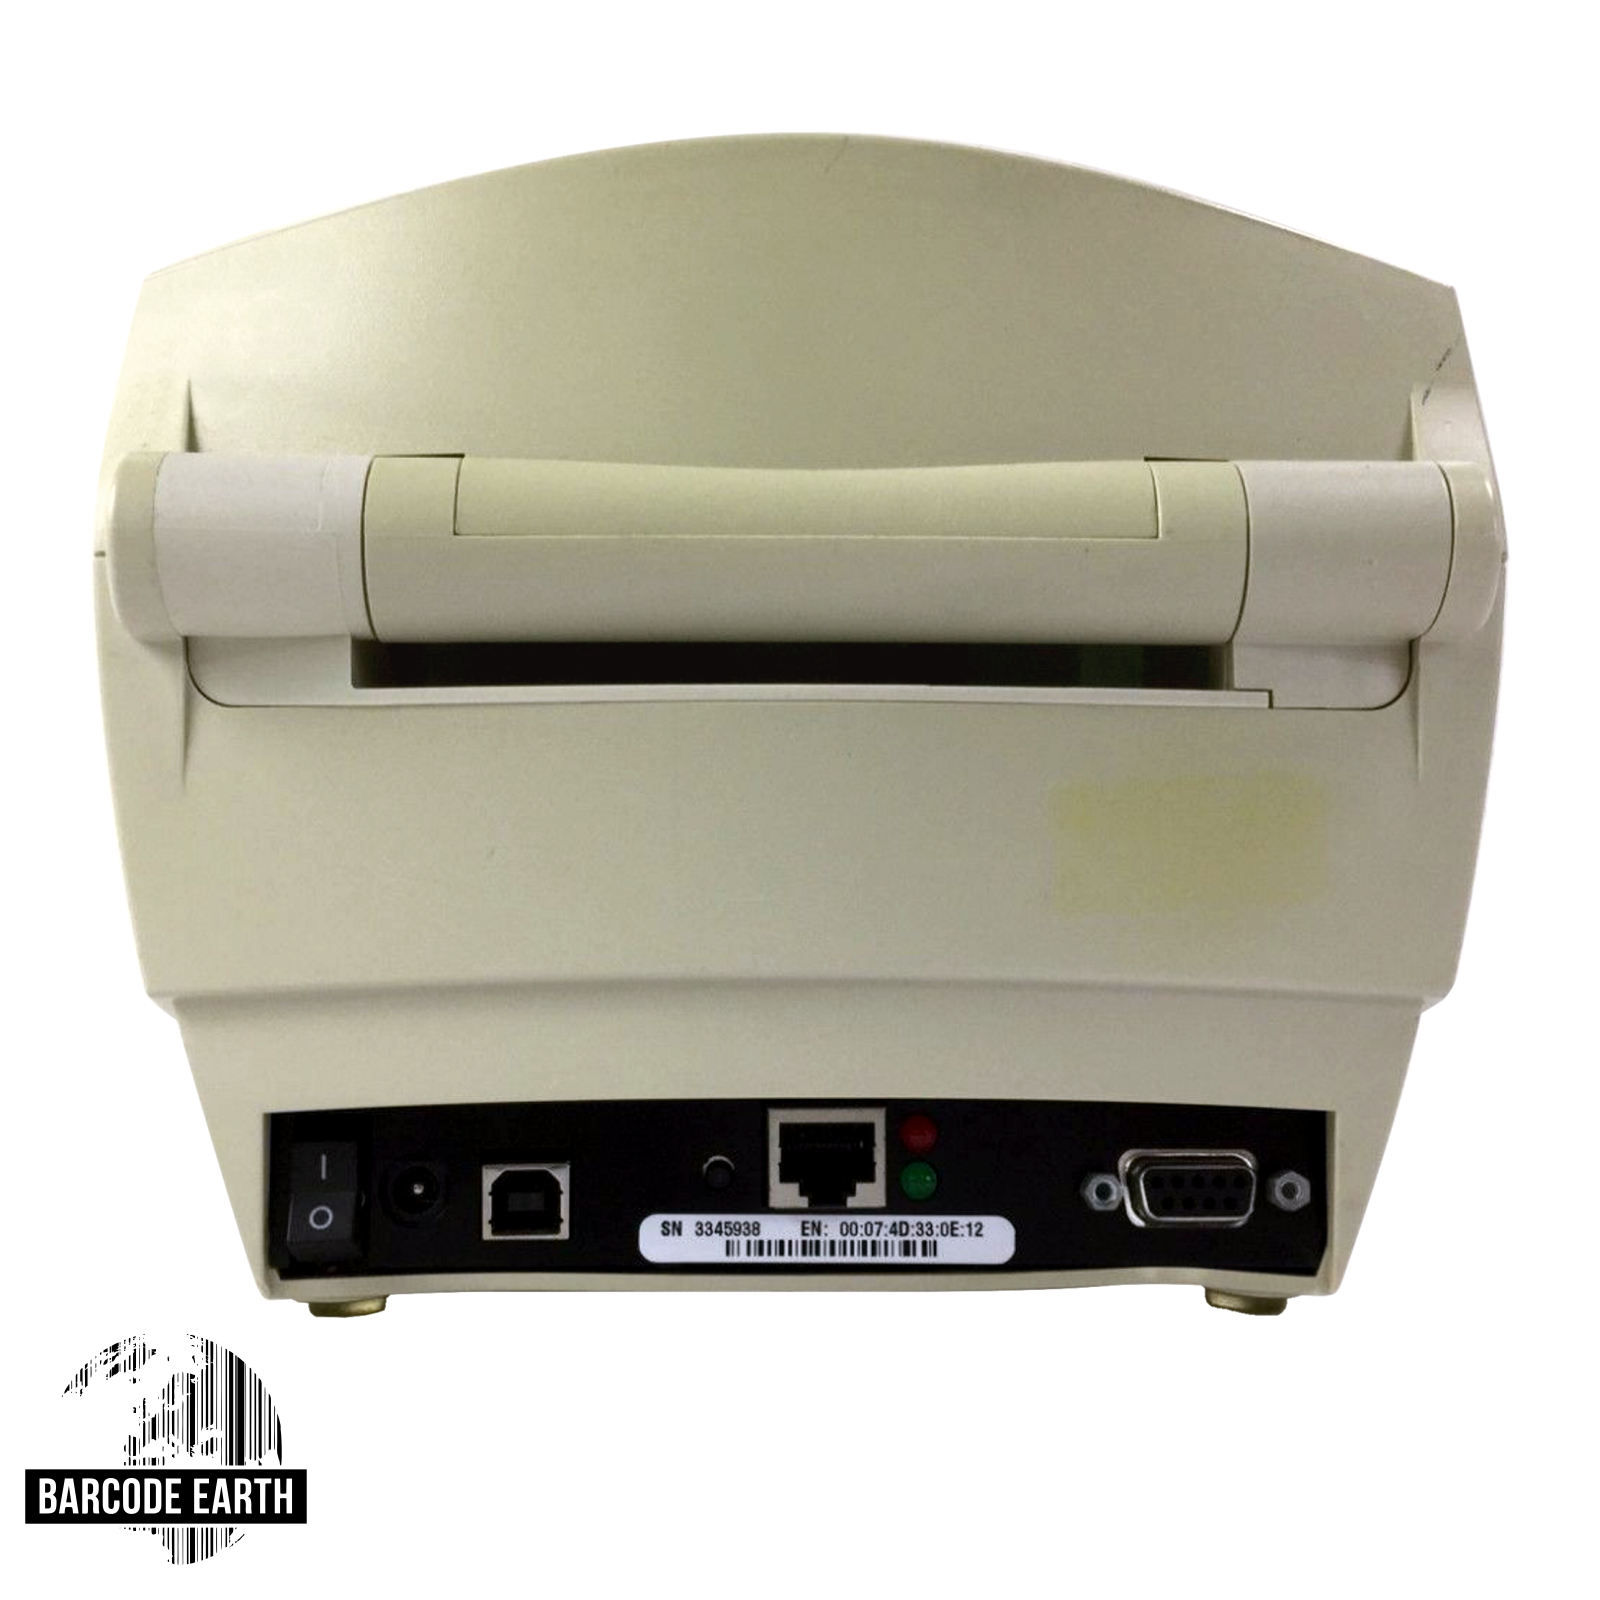 Yellowed Zebra LP2844-Z Printer - Network / Ethernet, Power, USB,  Refurbished